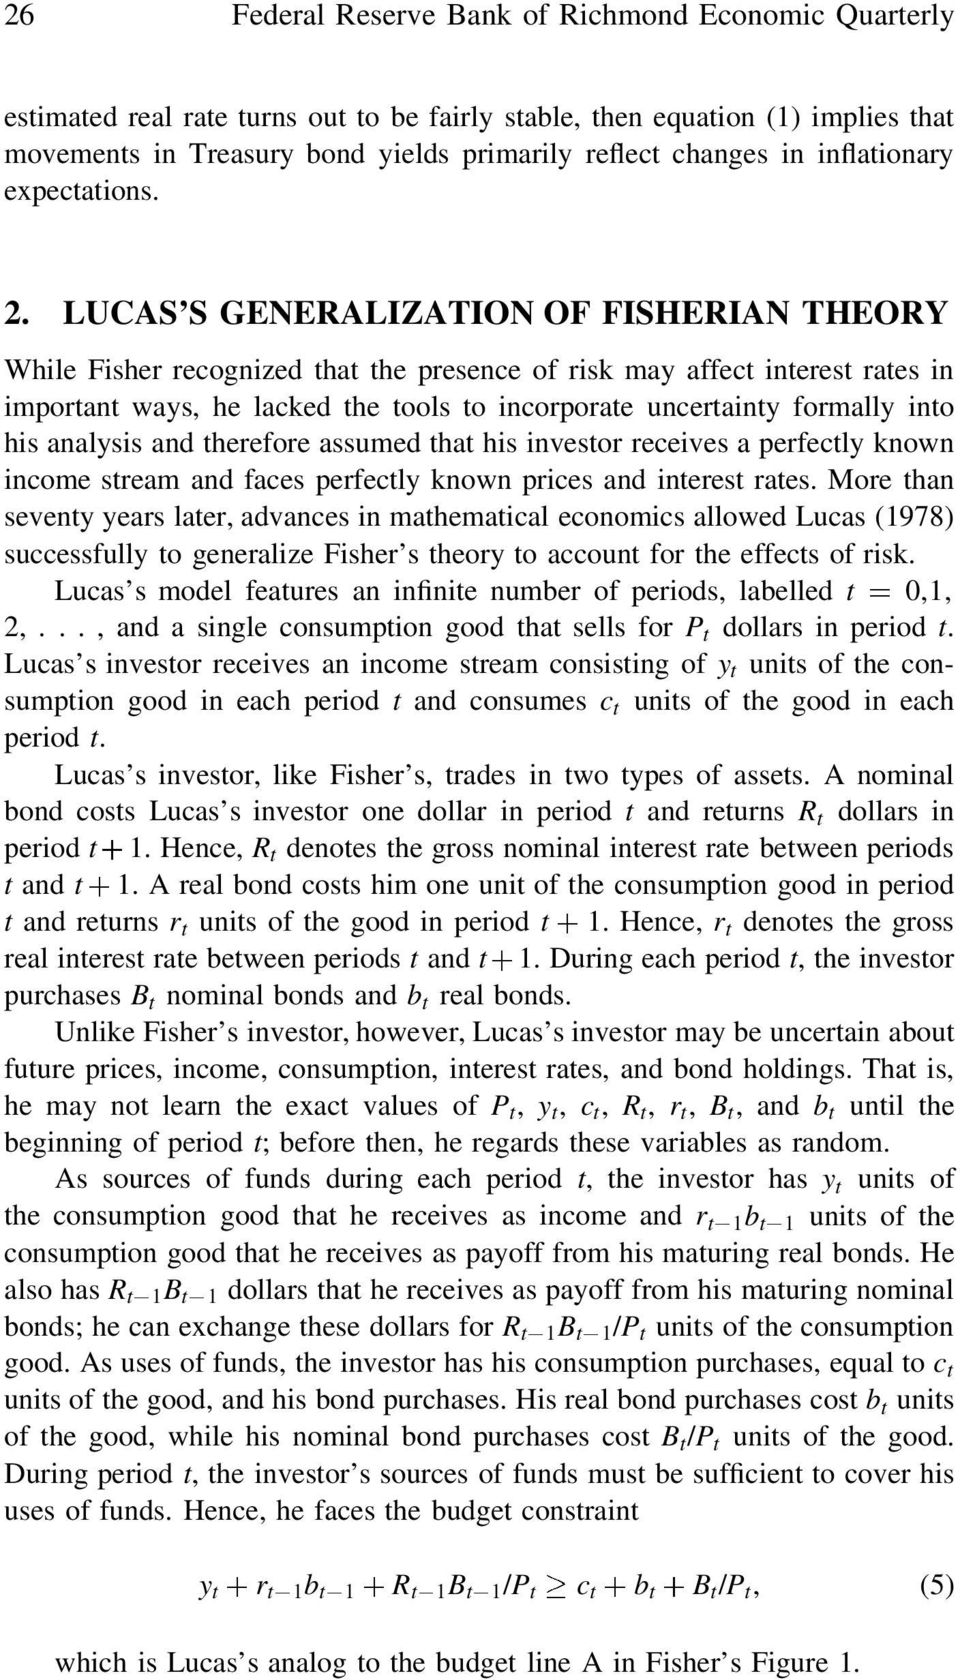 LUCAS S GENERALIZATION OF FISHERIAN THEORY While Fisher recognized that the presence of risk may affect interest rates in important ways, he lacked the tools to incorporate uncertainty formally into